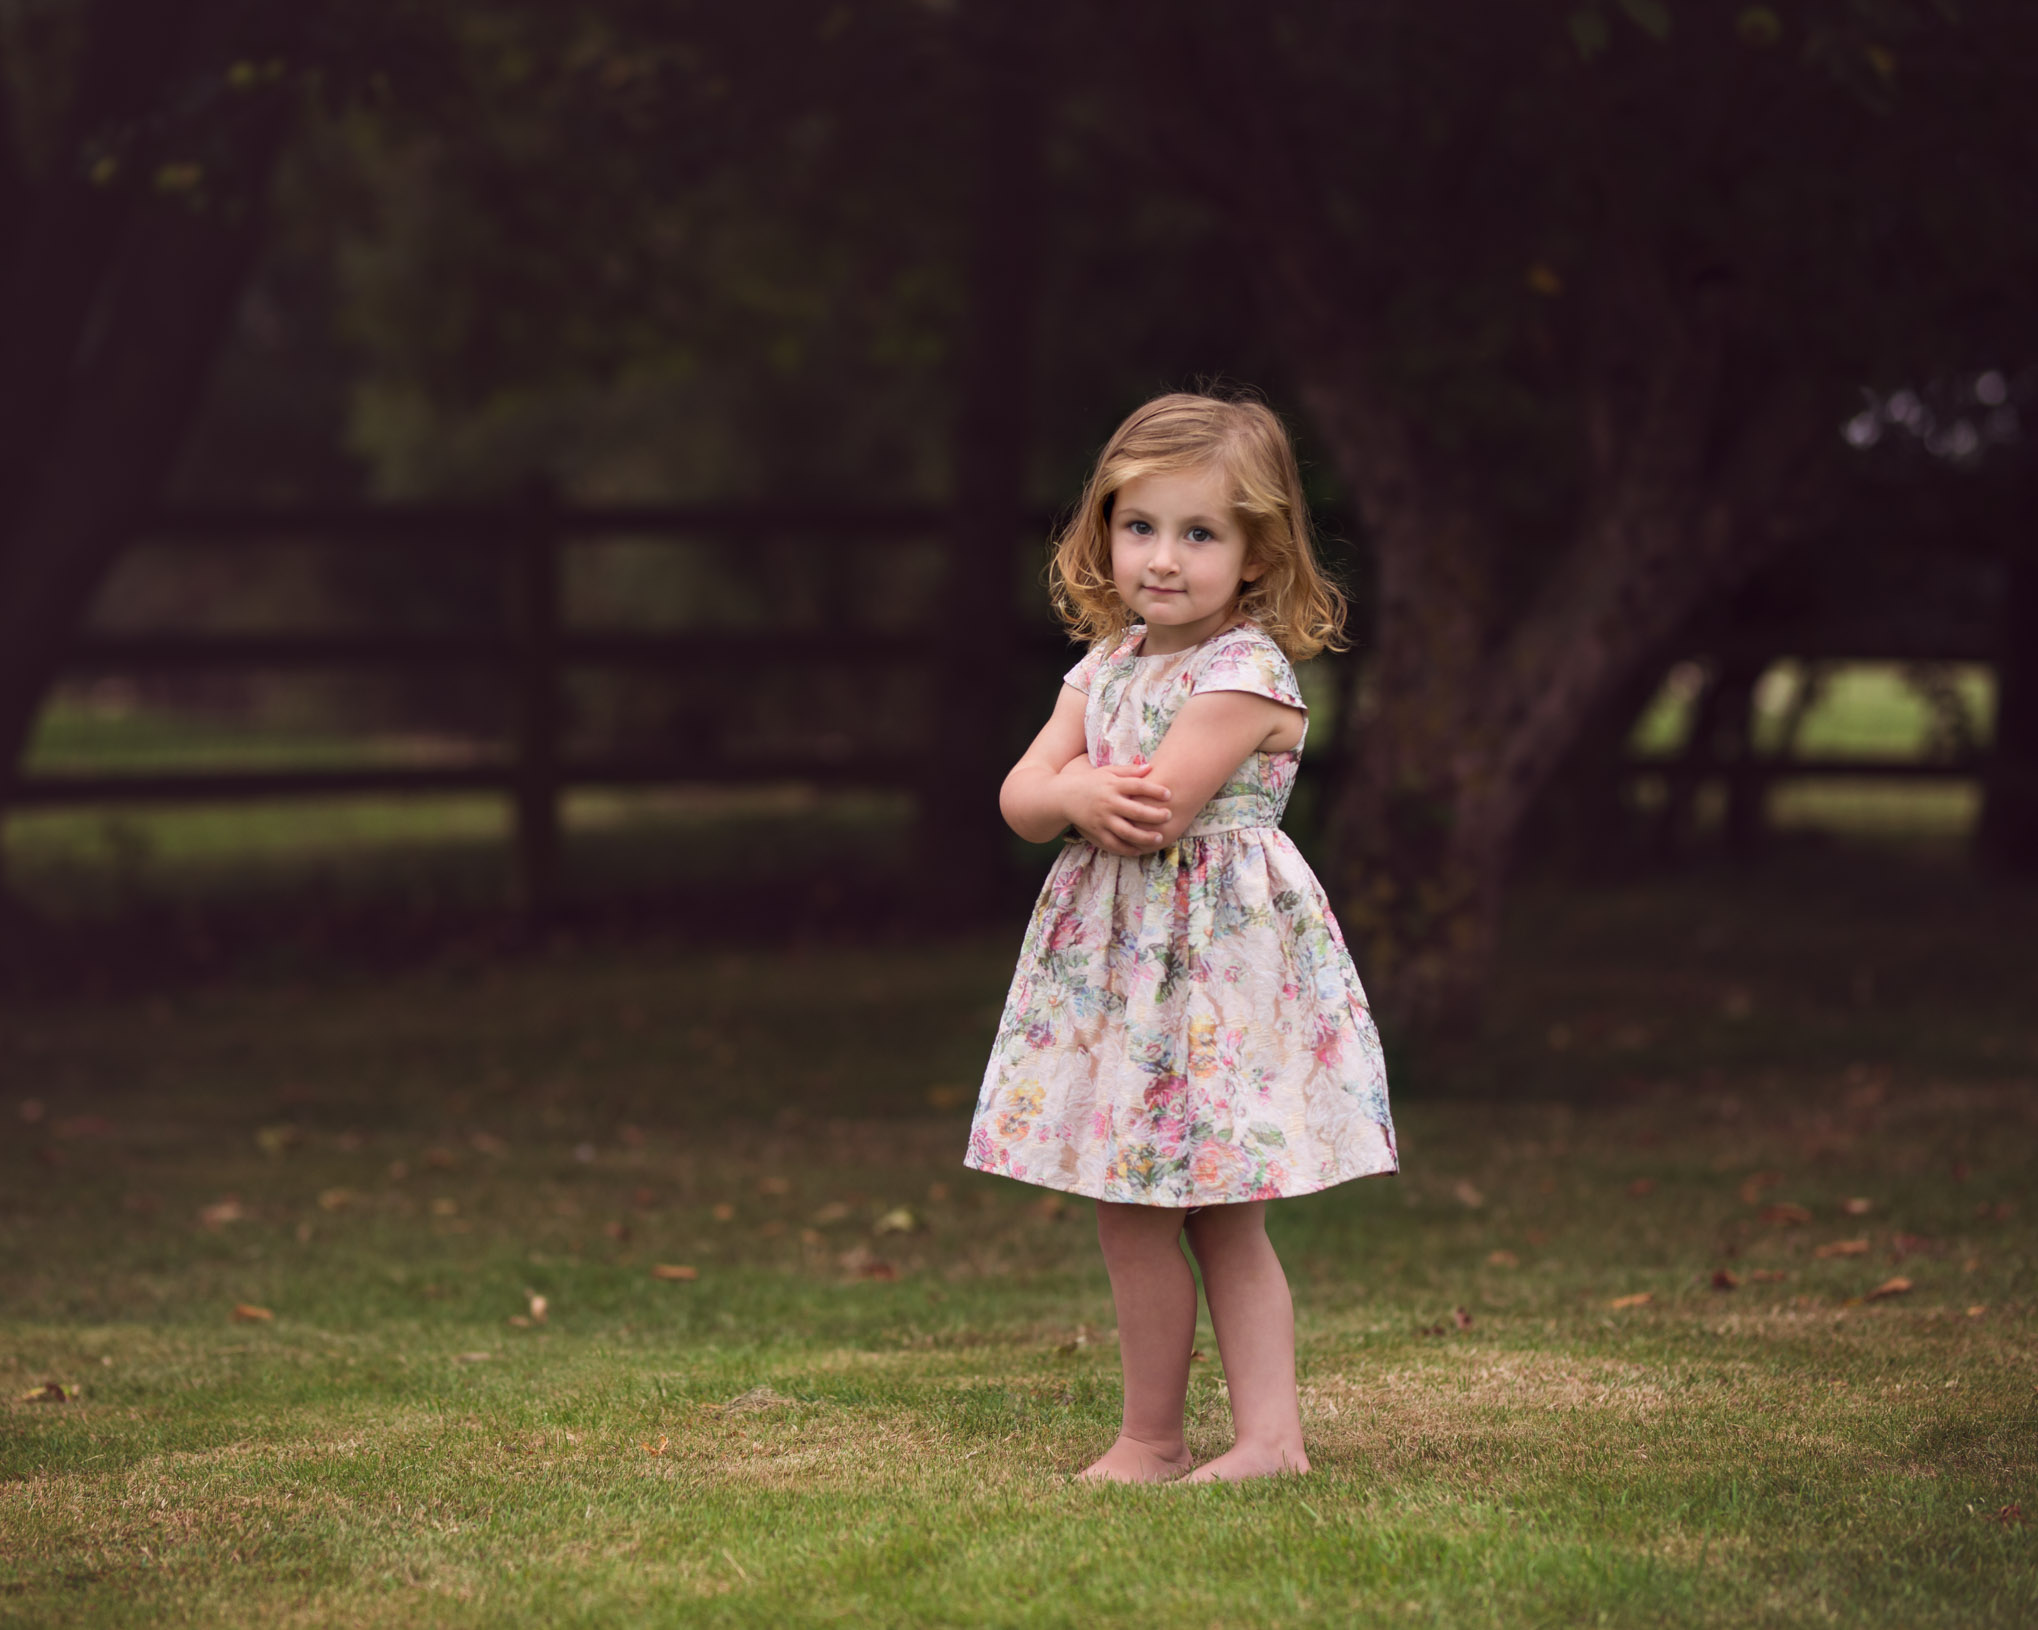 Toddler posing with arms crossed in gardens | Children's Photography